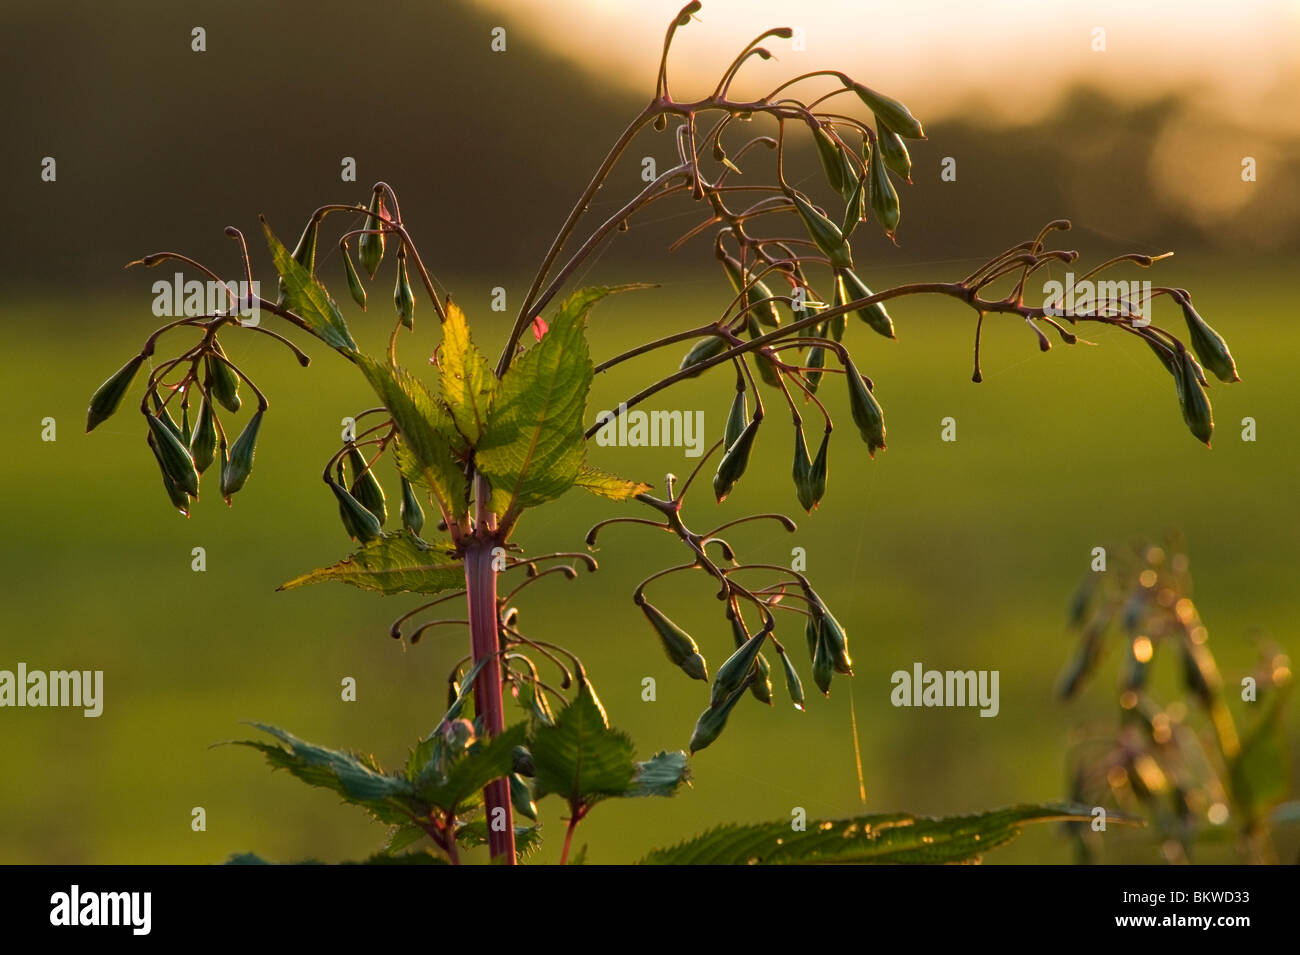 Seed-pods of Himalayan Balsam (Impatiens glandulifera) near Garstang, Lancashire, England - Stock Image